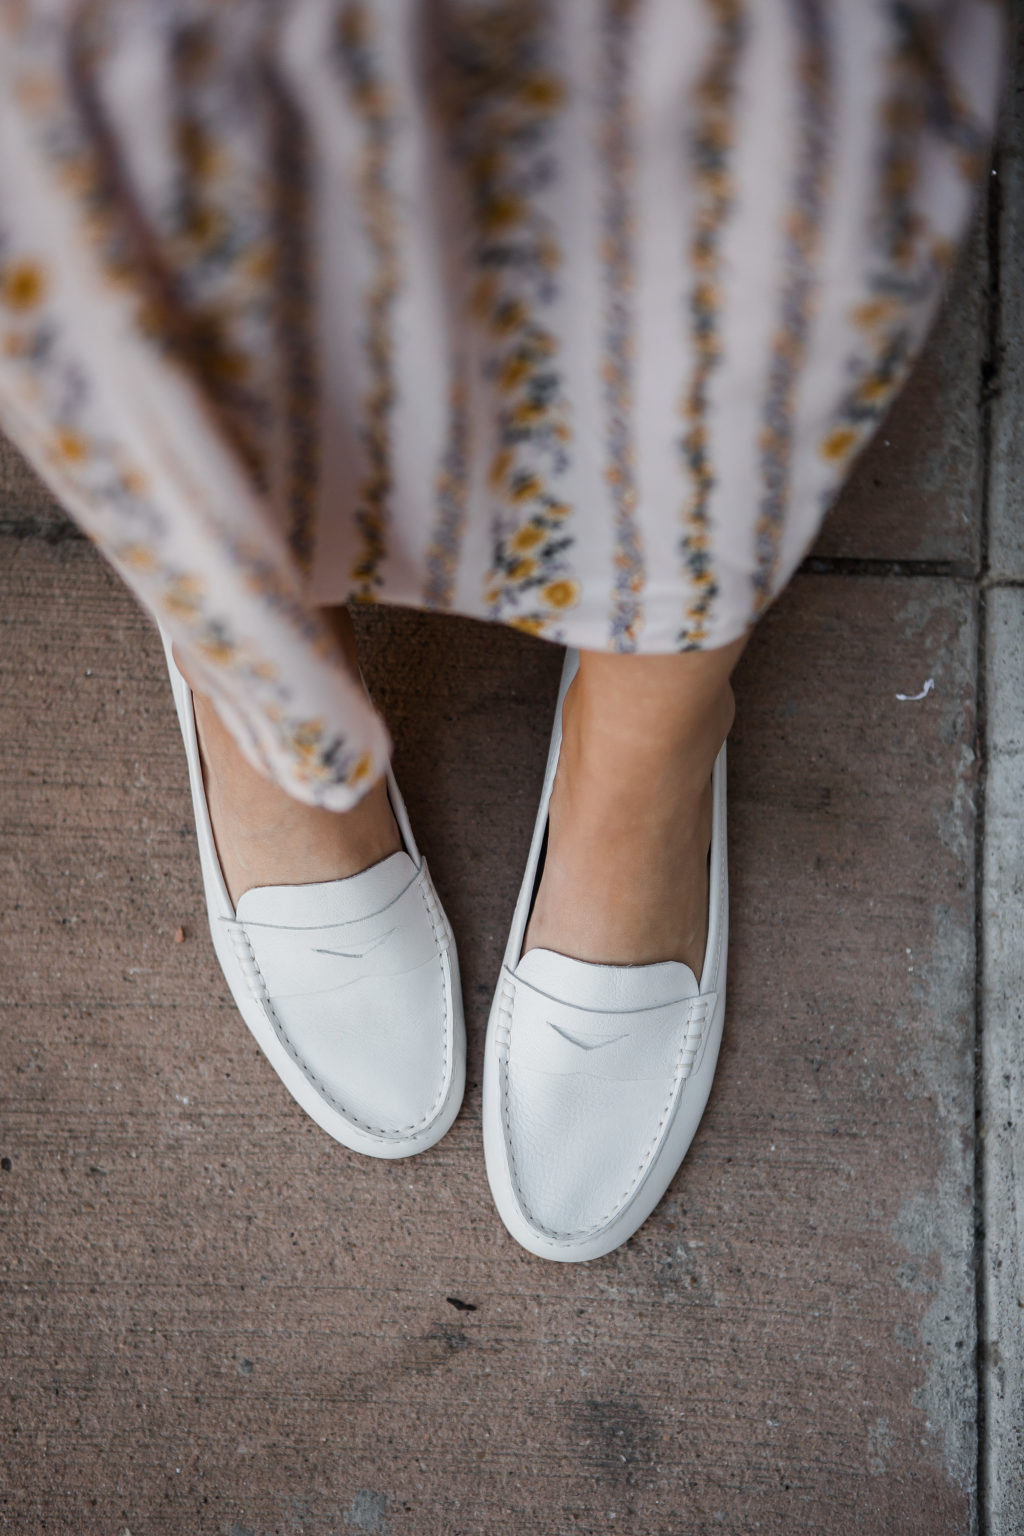 White Loafers for Spring  The Teacher Diva a Dallas